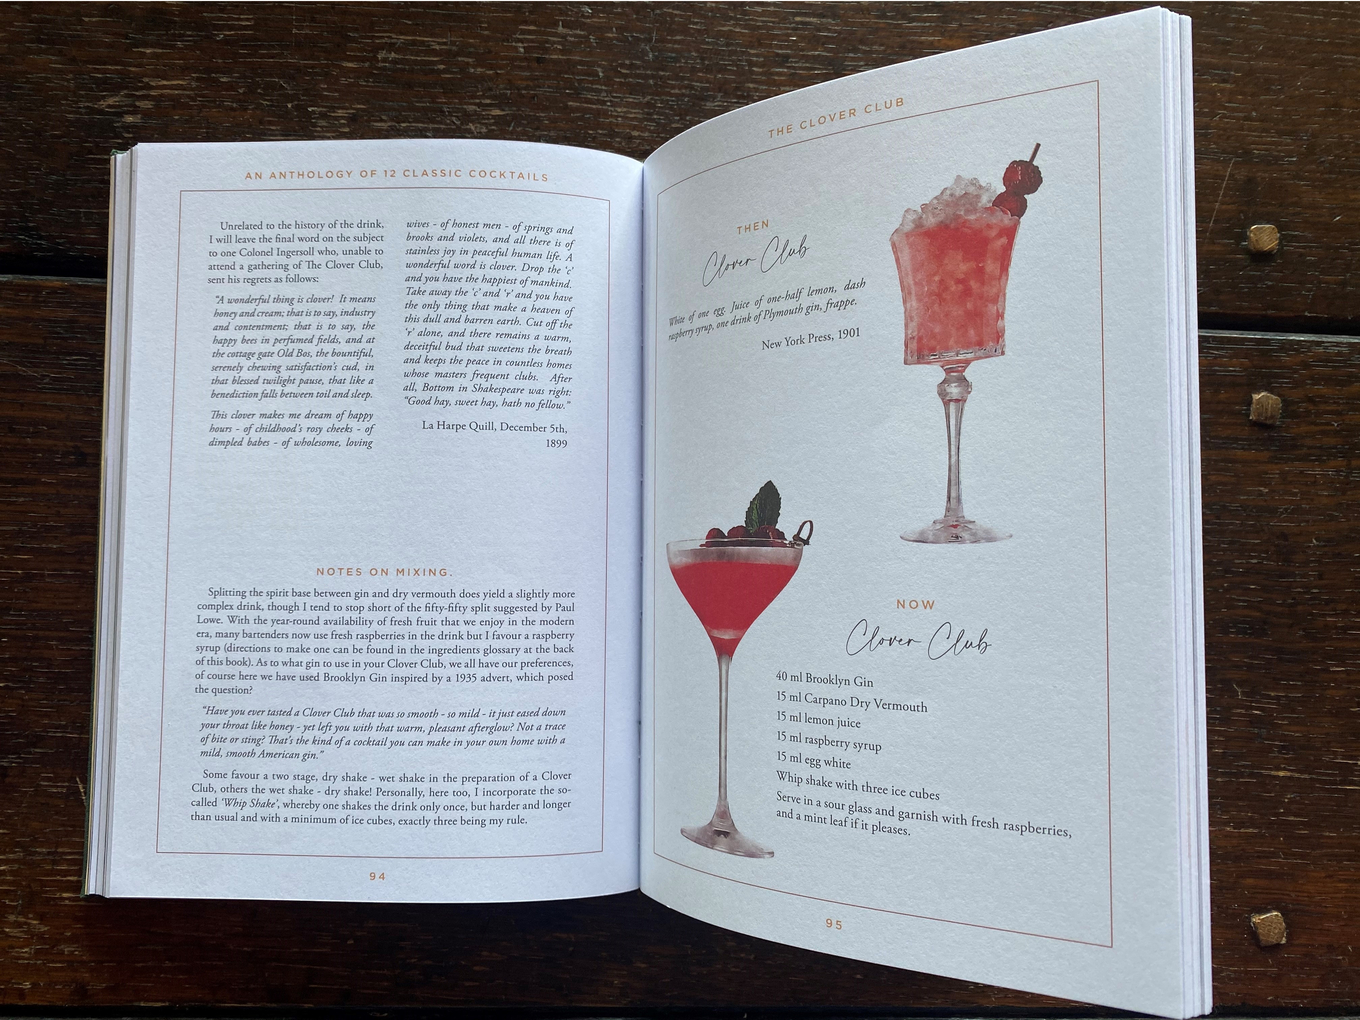 An Anthology of 12 Classic Cocktails image 1